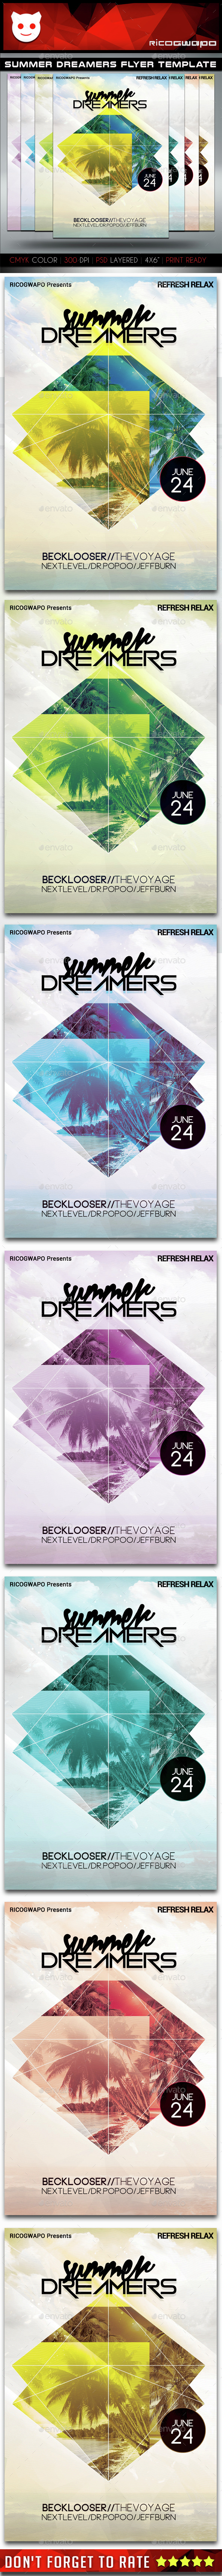 Summer Dreamers Flyer Template - Flyers Print Templates